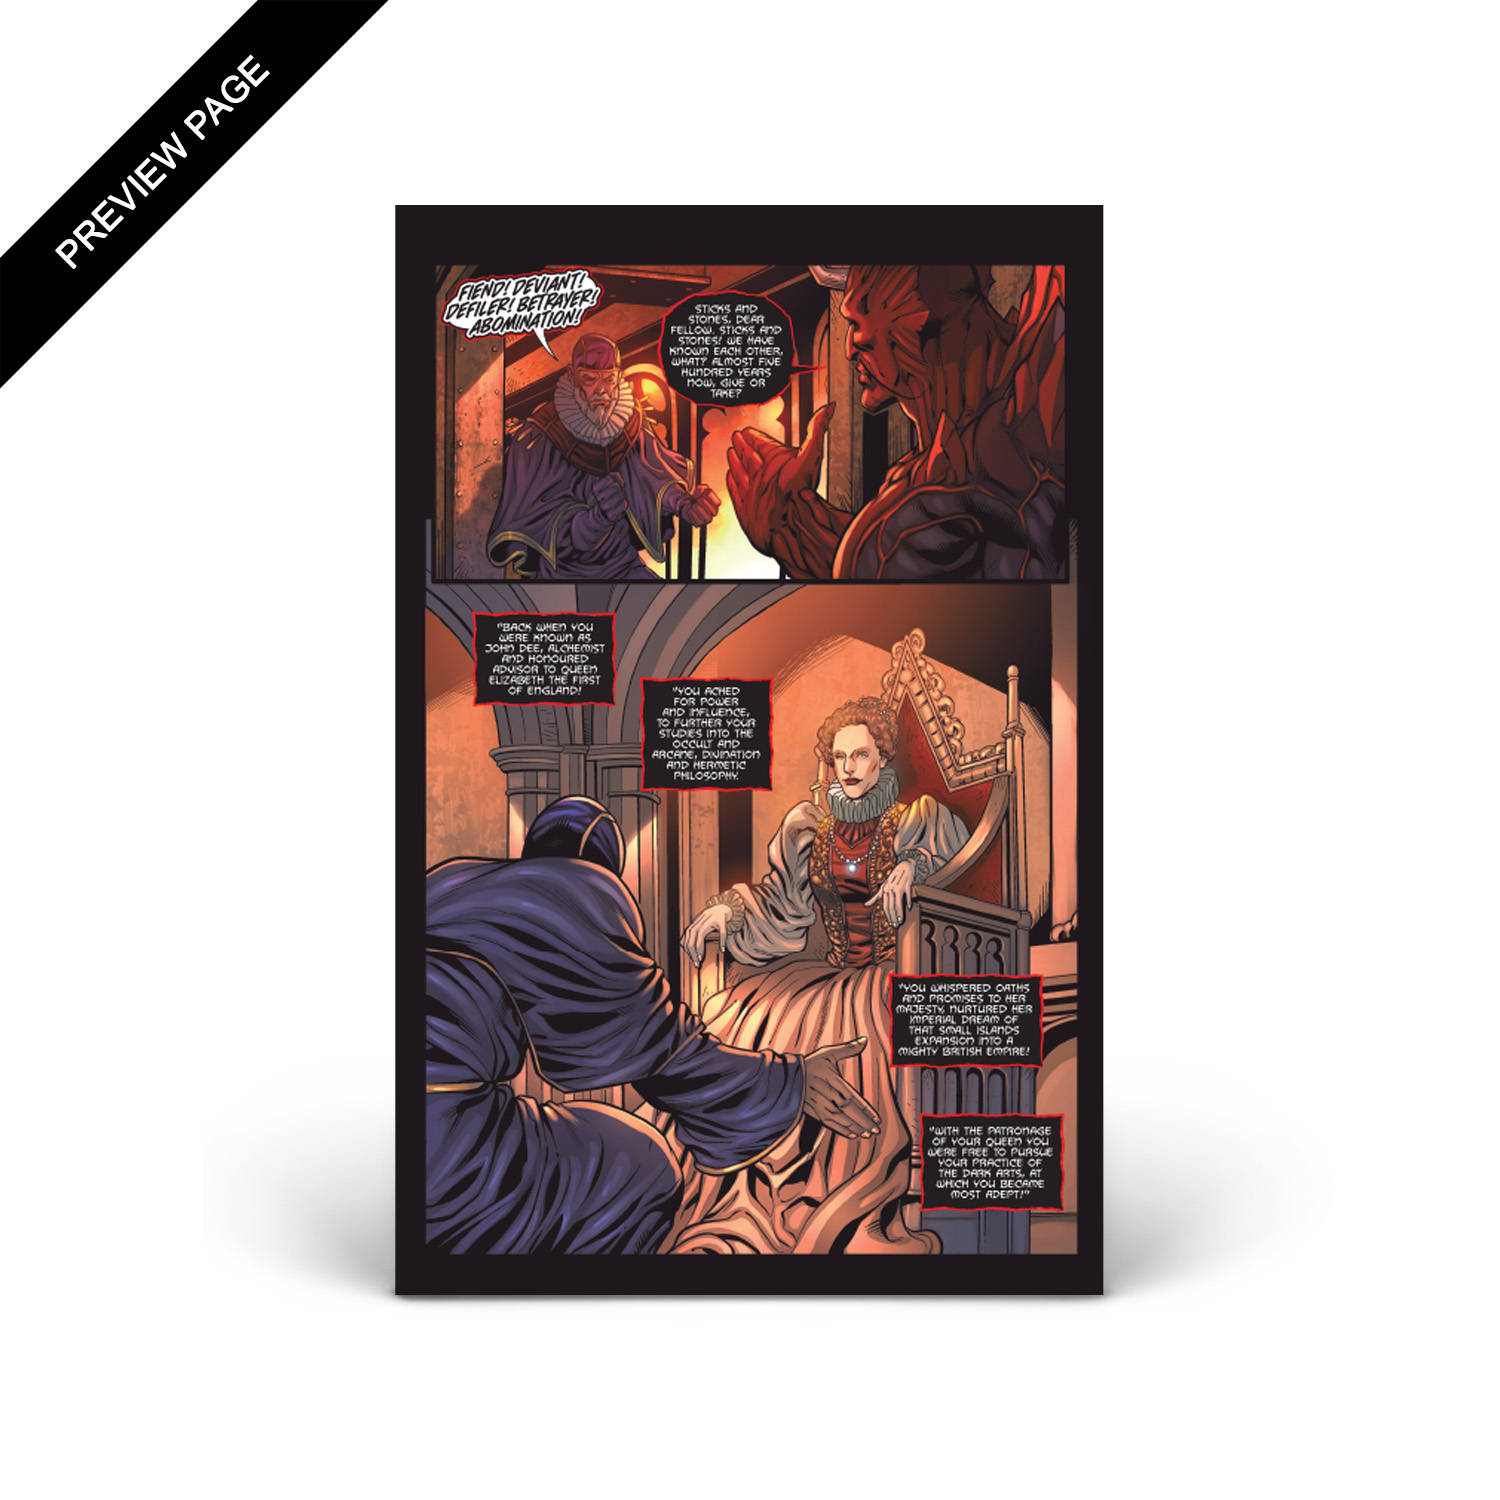 Iron Maiden - Legacy of the Beast - Volume 2 - Issue #4 - Cover A